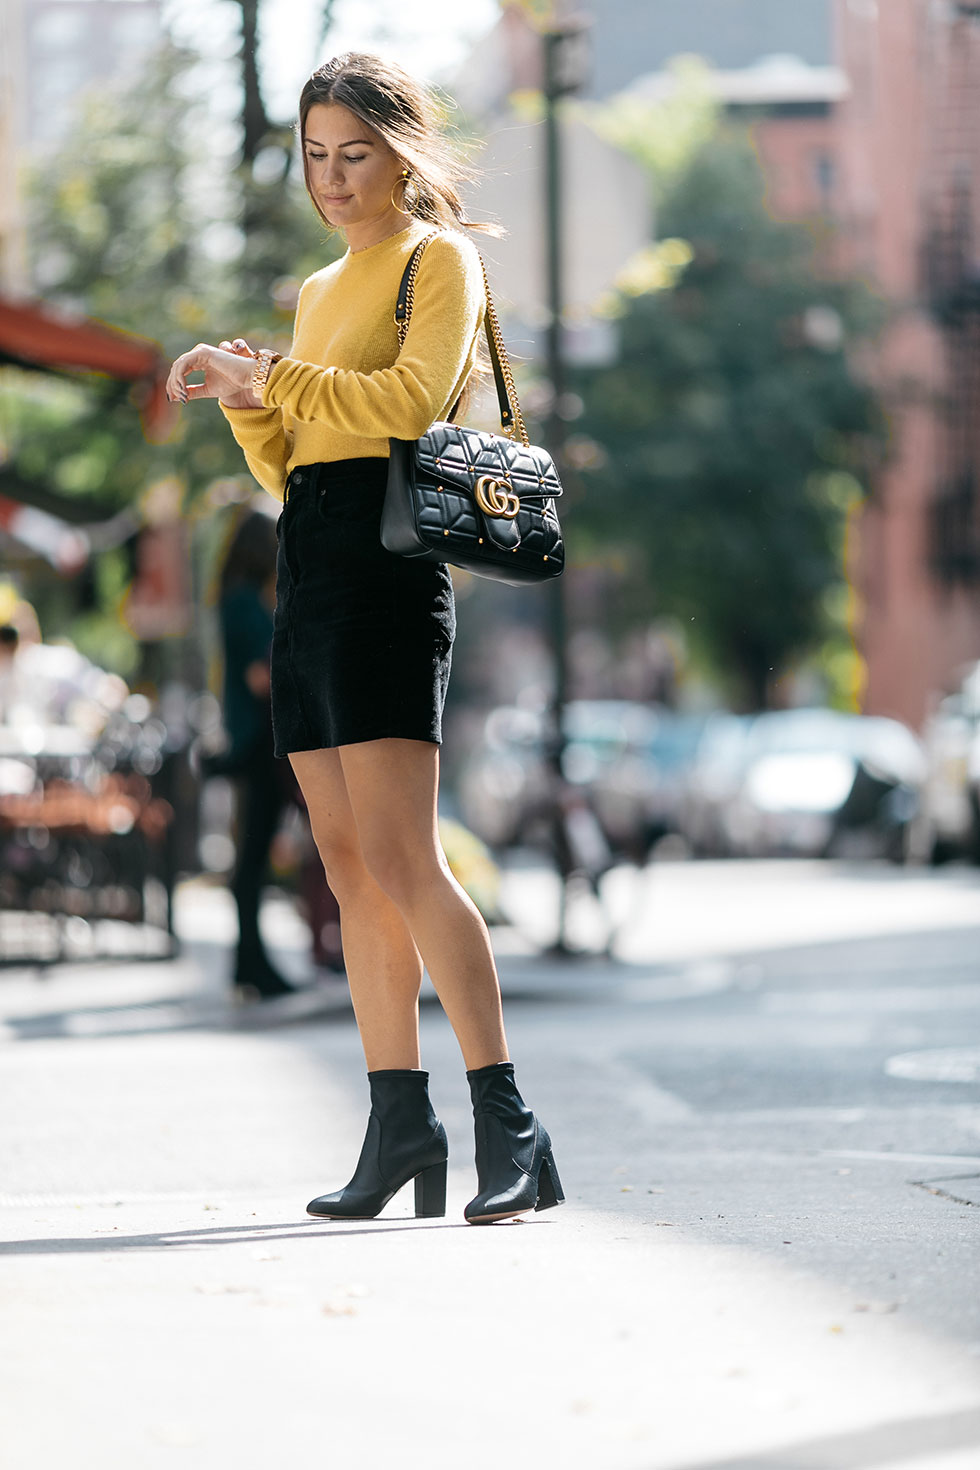 yellow-cashmere-sweater-with-black-velvet-skirt-and-ankle-boots-fall-outfit9.jpg